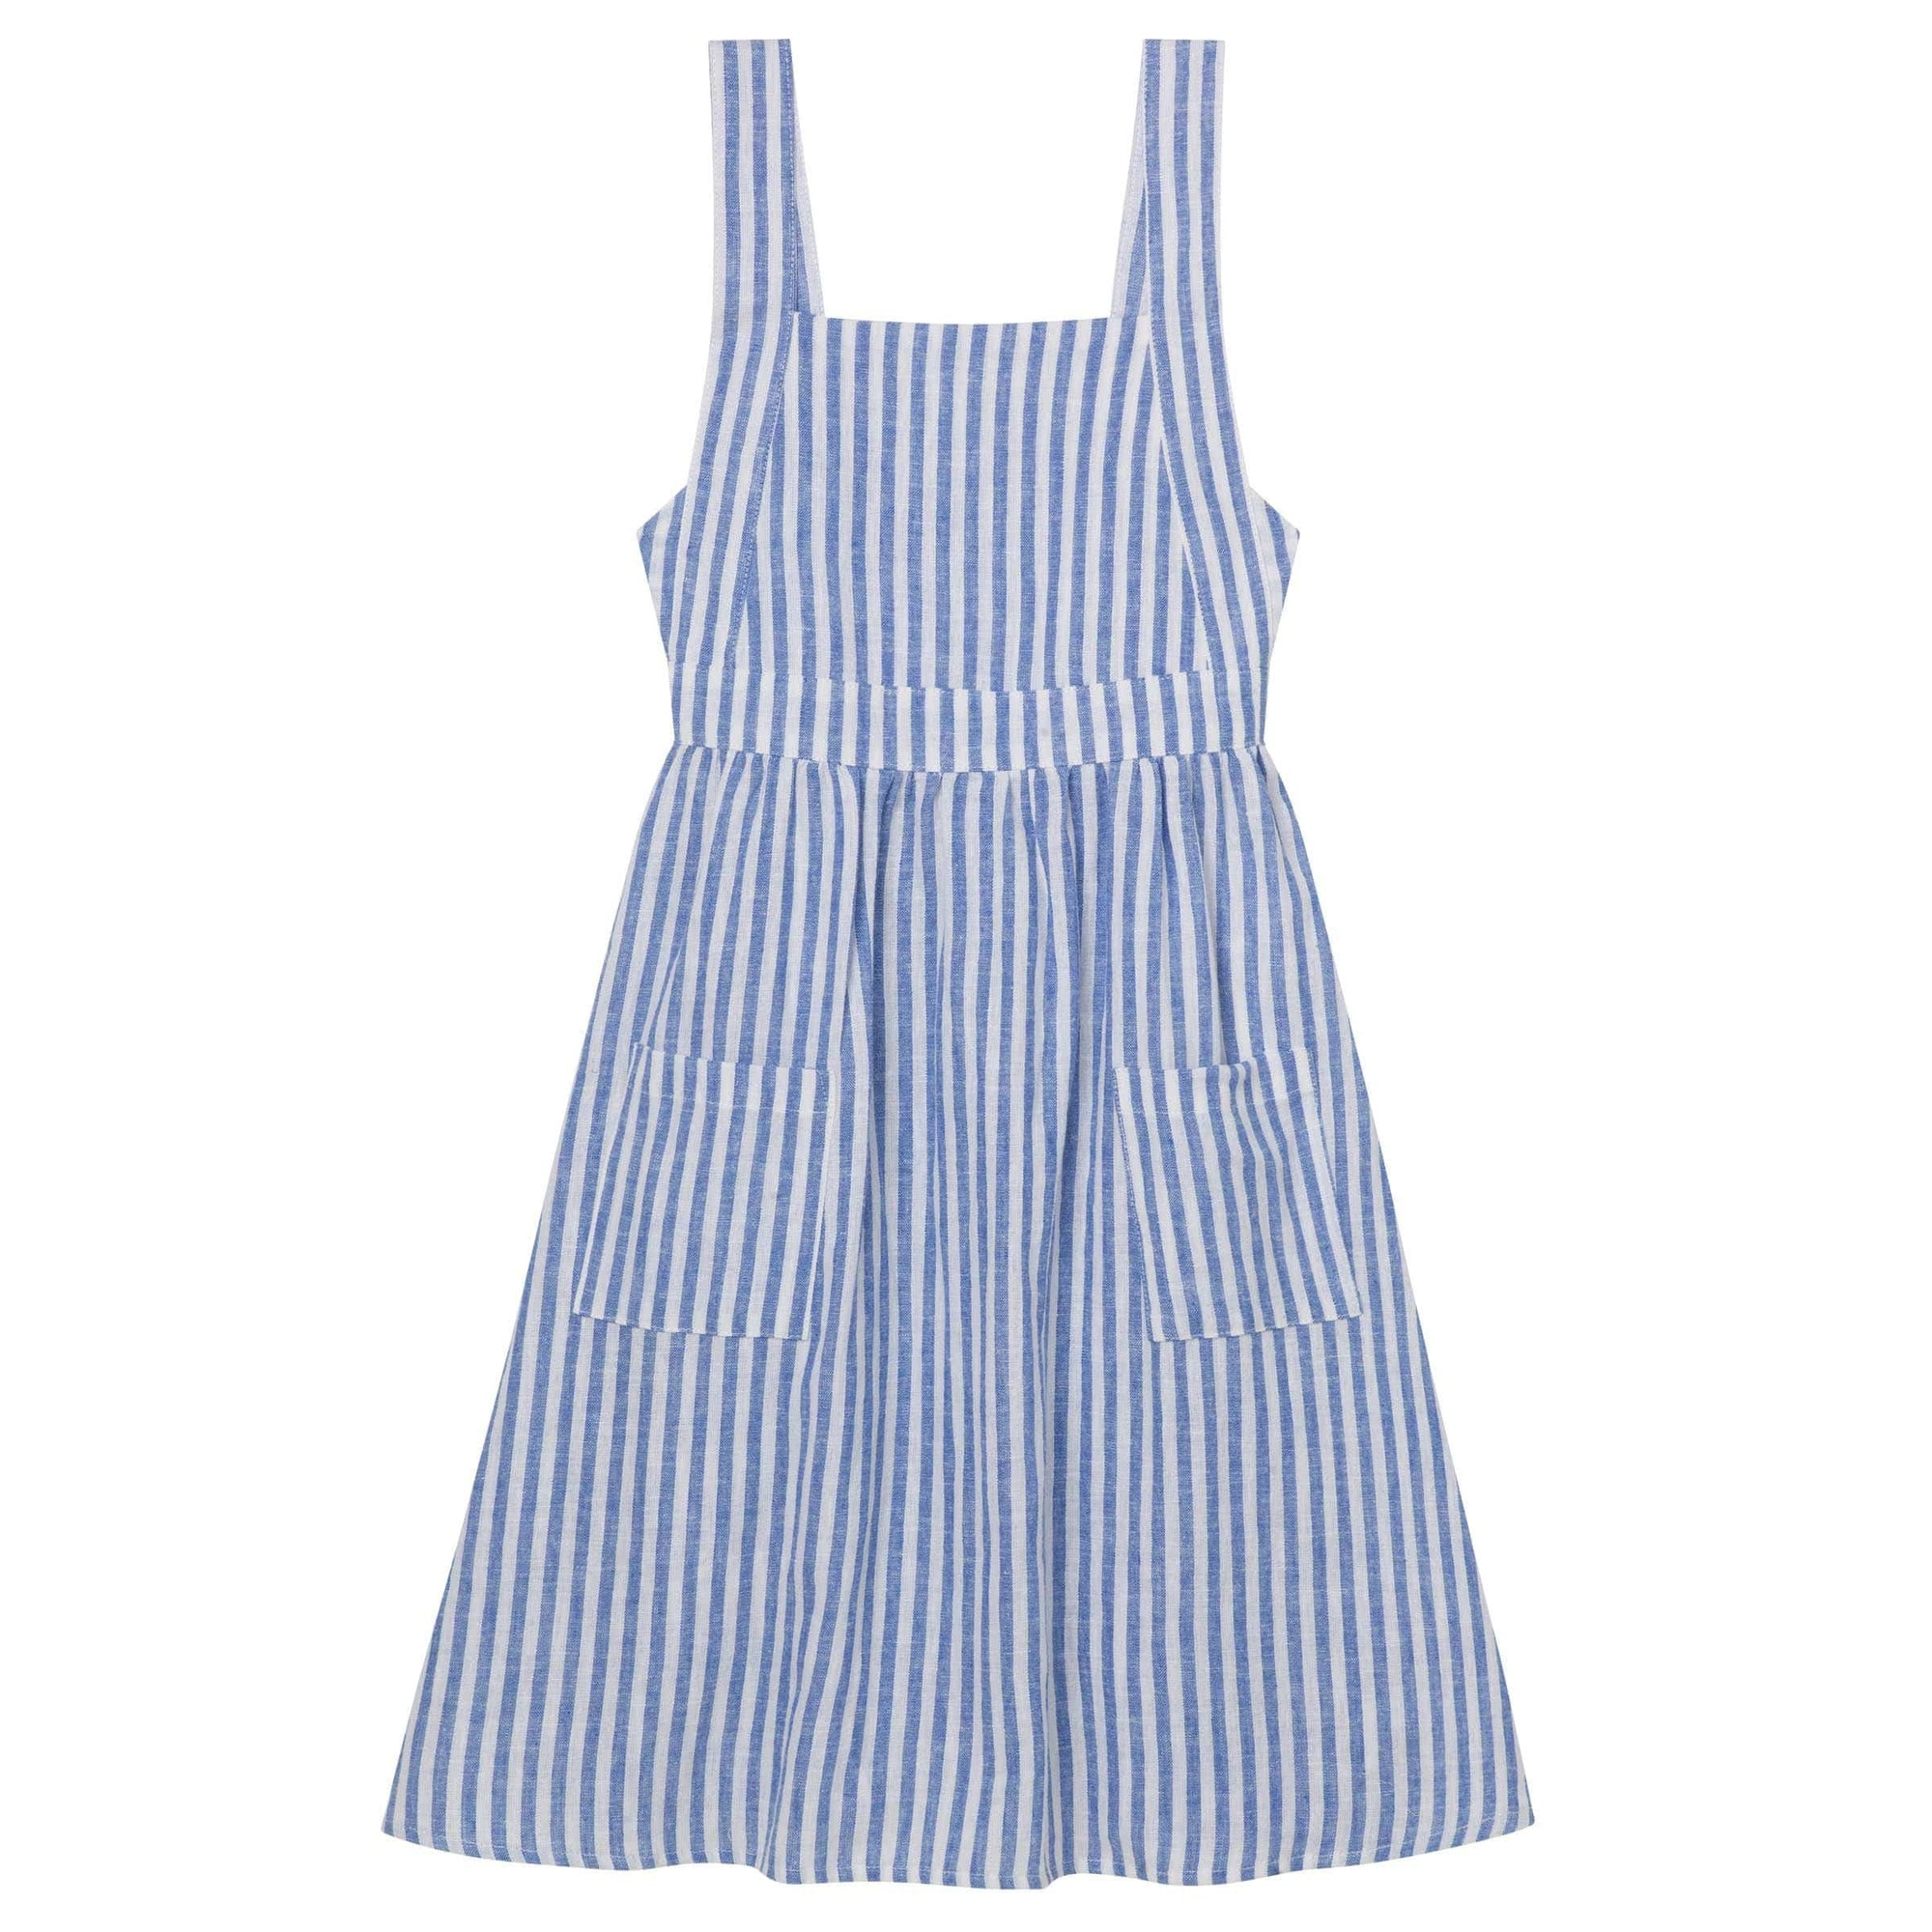 Designer Kidz Midi Dress with Straps - Seaside Stripe